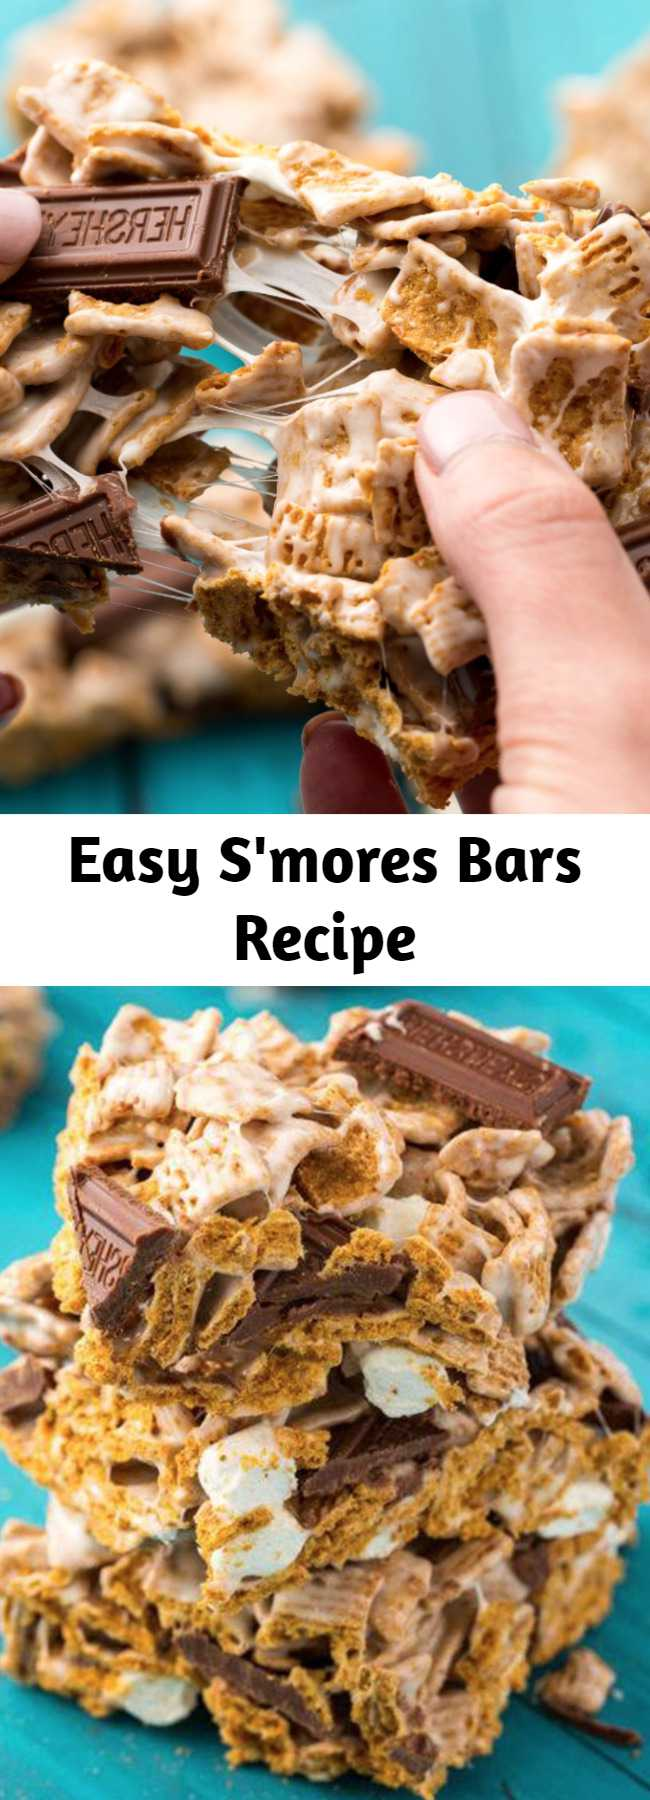 Easy S'mores Bars Recipe - These S'mores Krispie Treats are the best summer dessert!